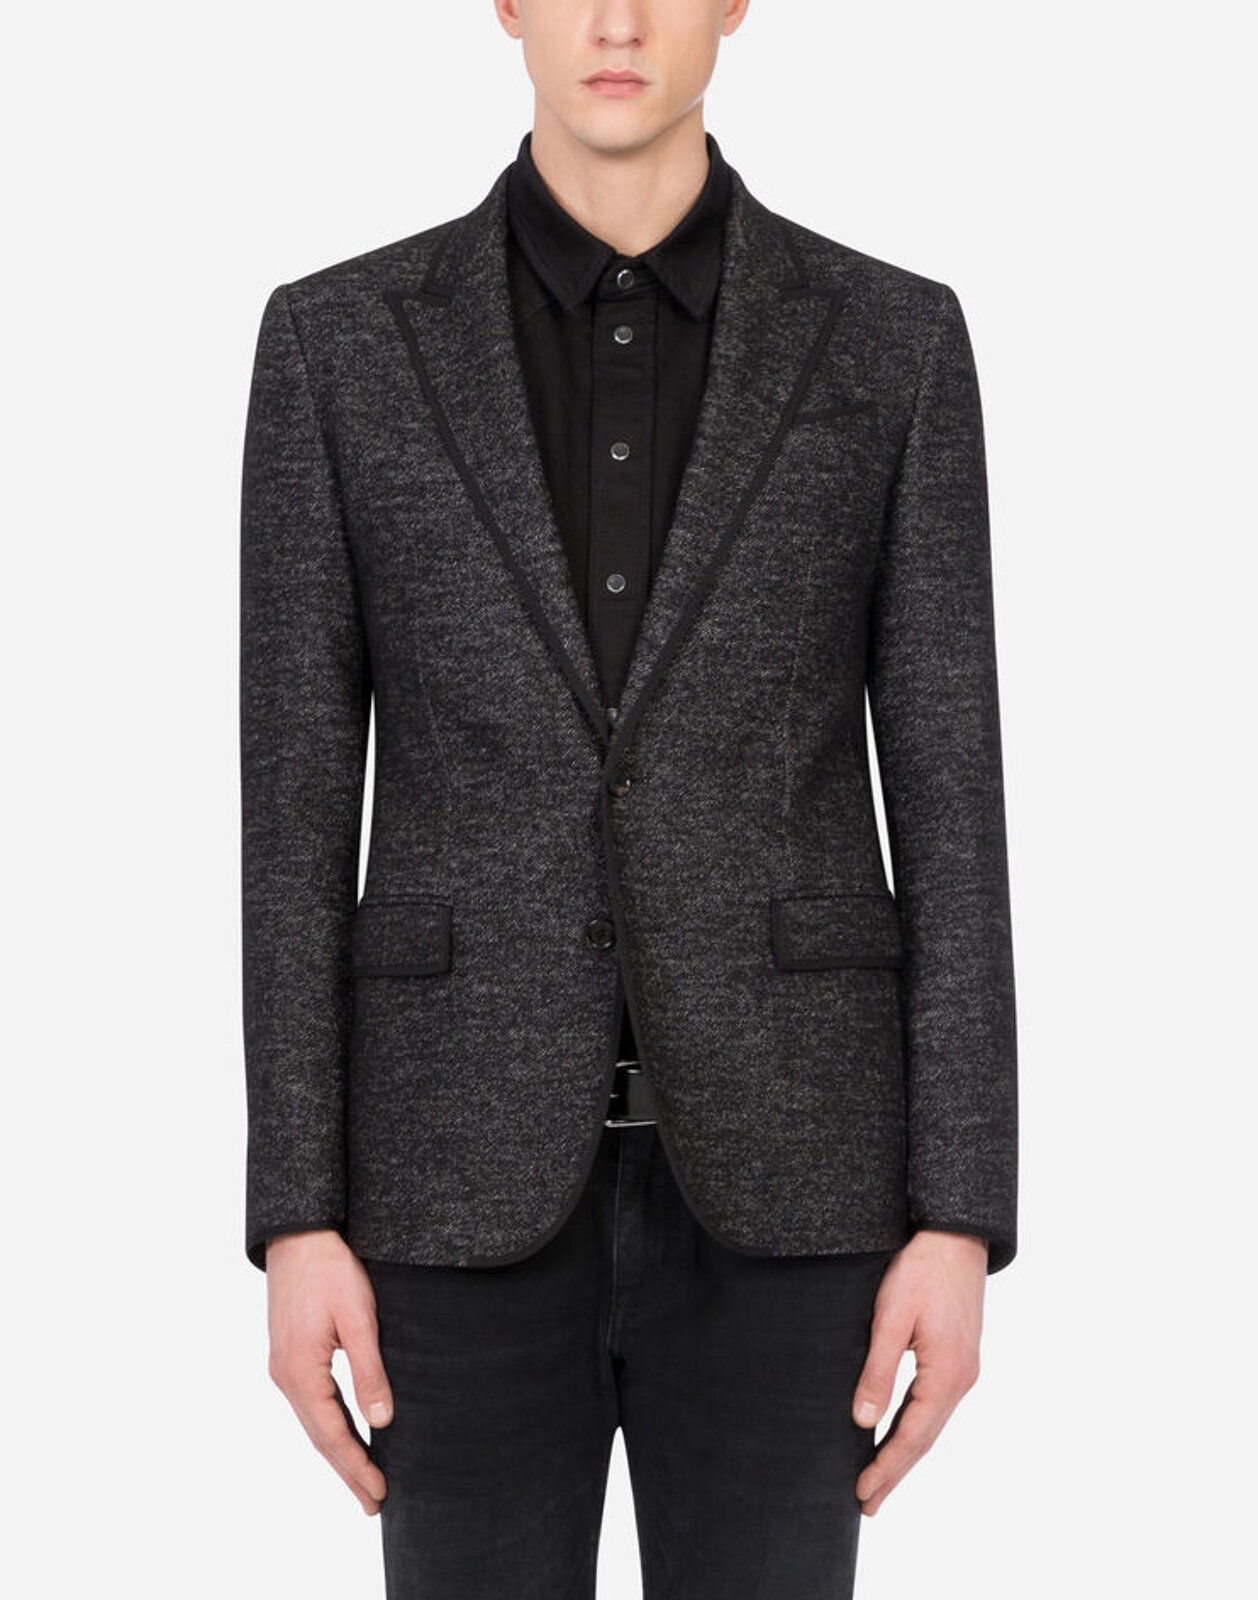 Deconstructed Jacket In Microfantasia Jersey - Dolce & Gabbana